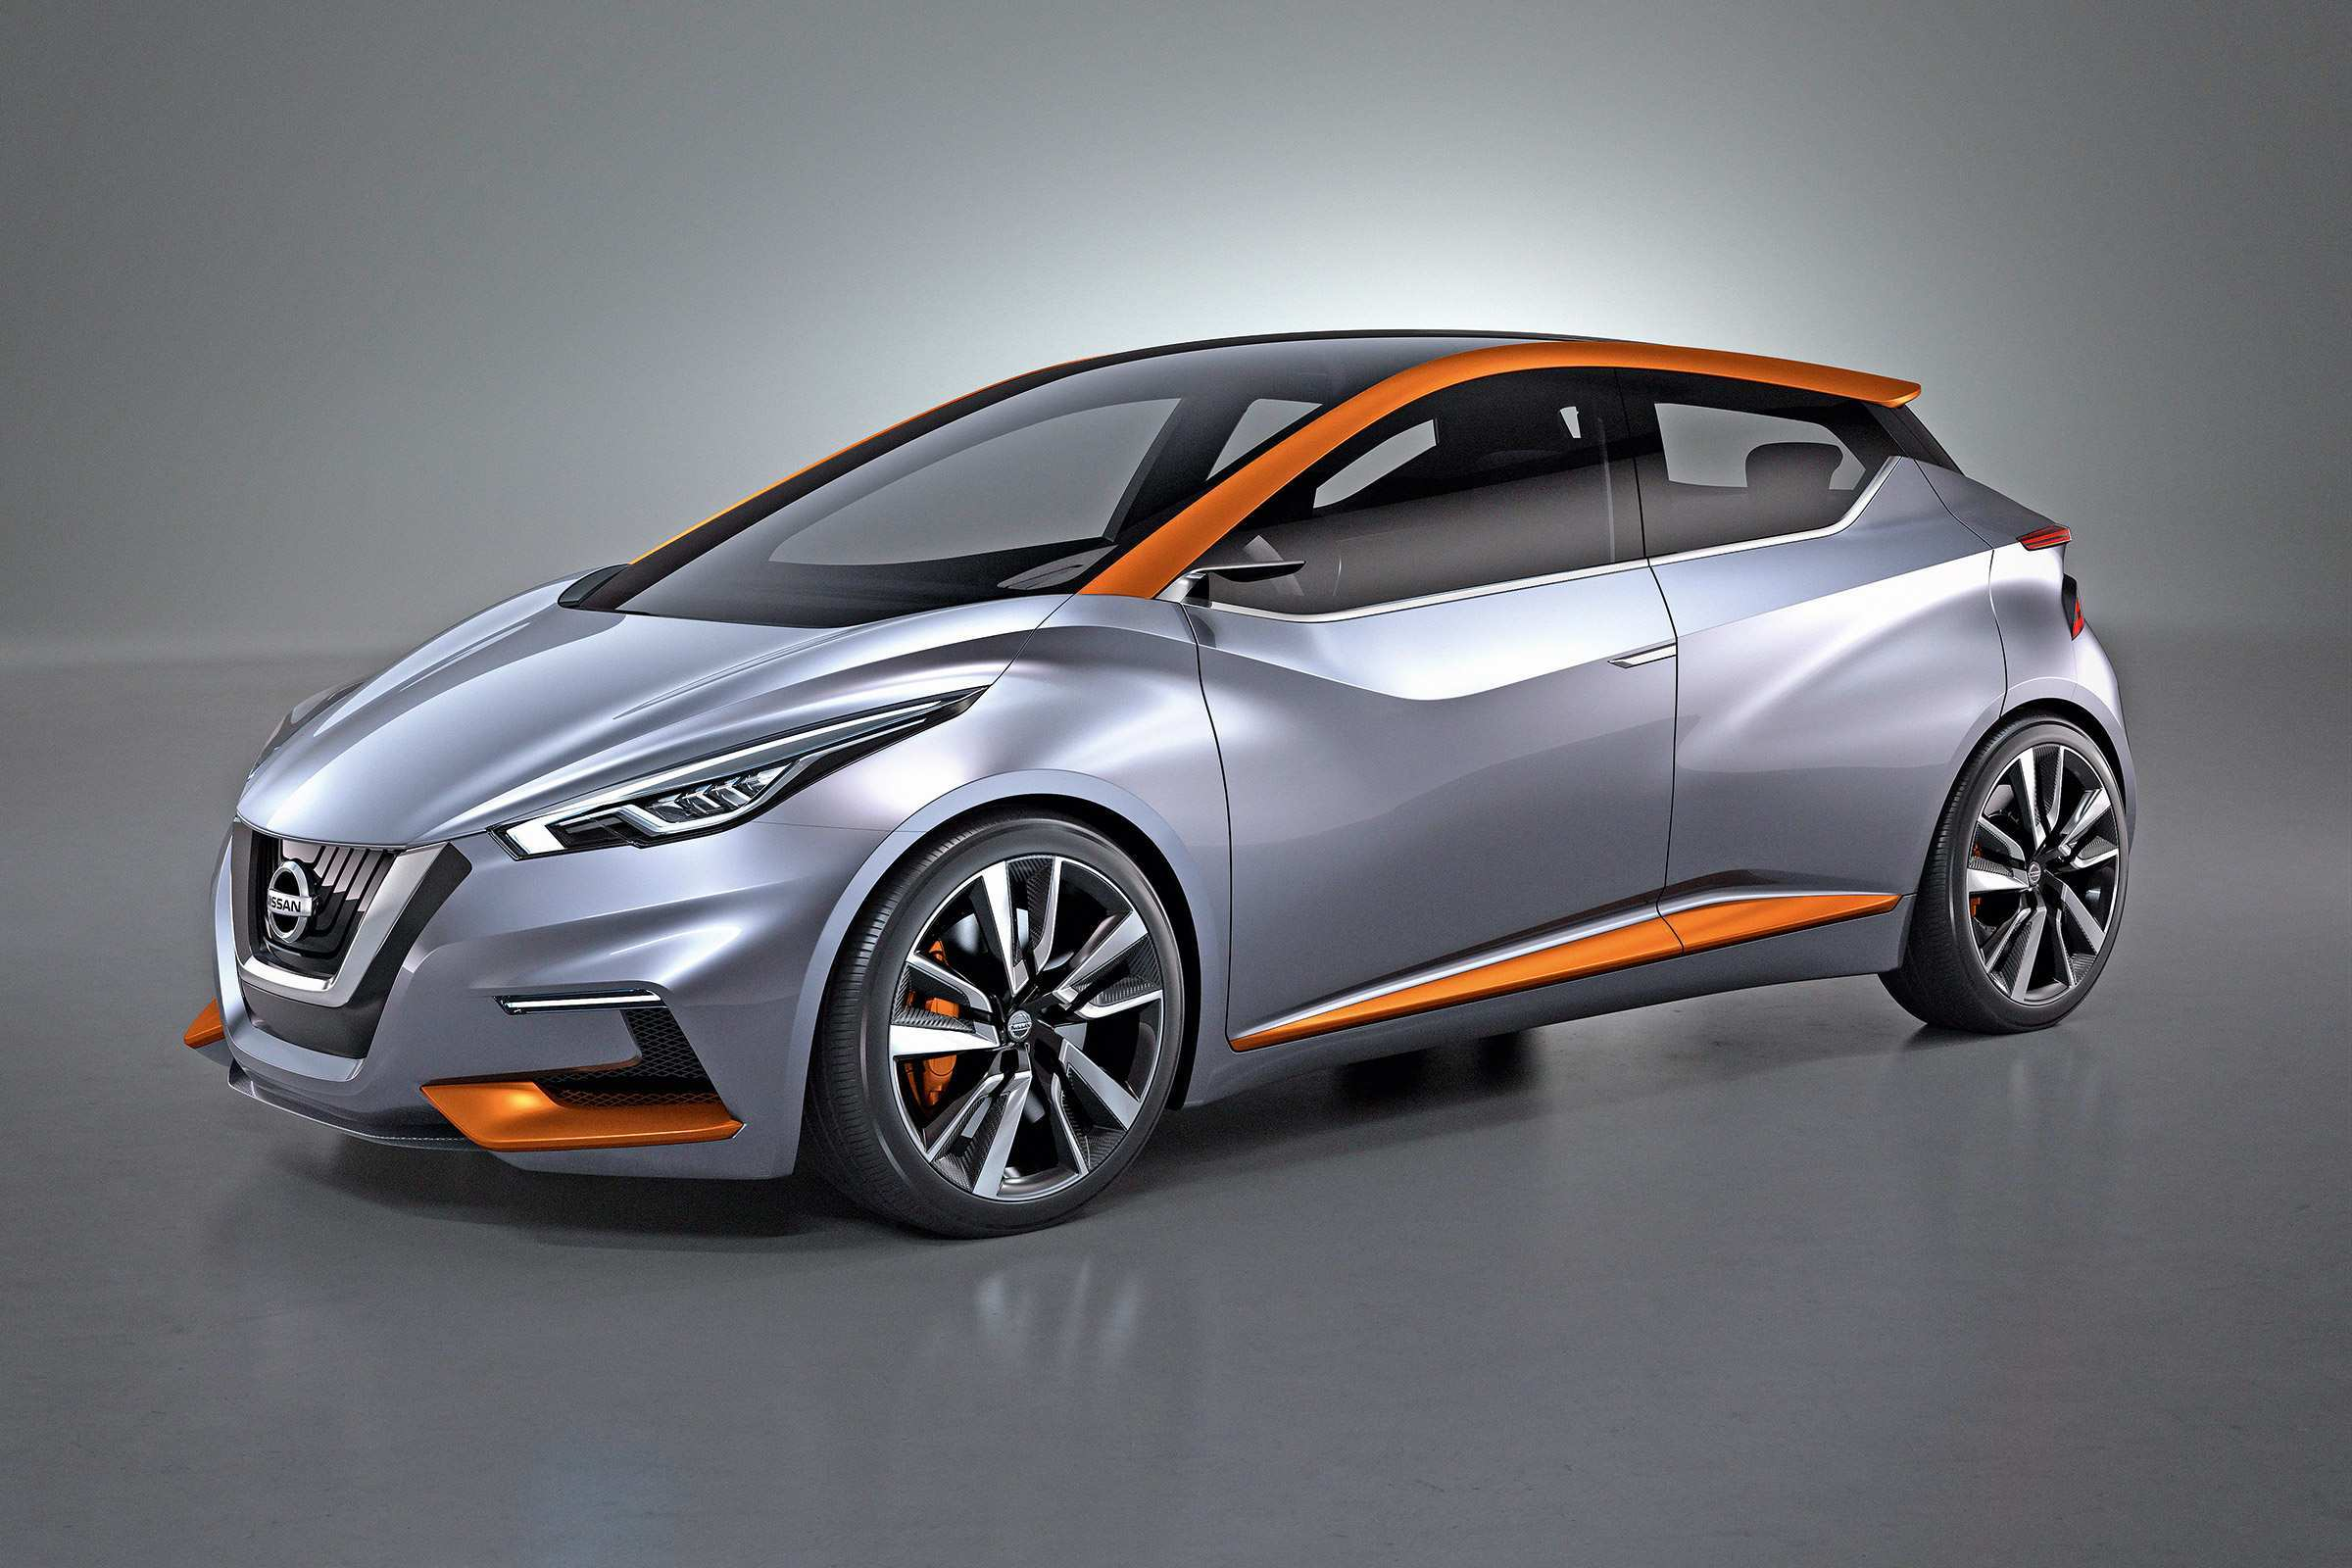 11 New Nissan Cars 2020 Redesign by Nissan Cars 2020